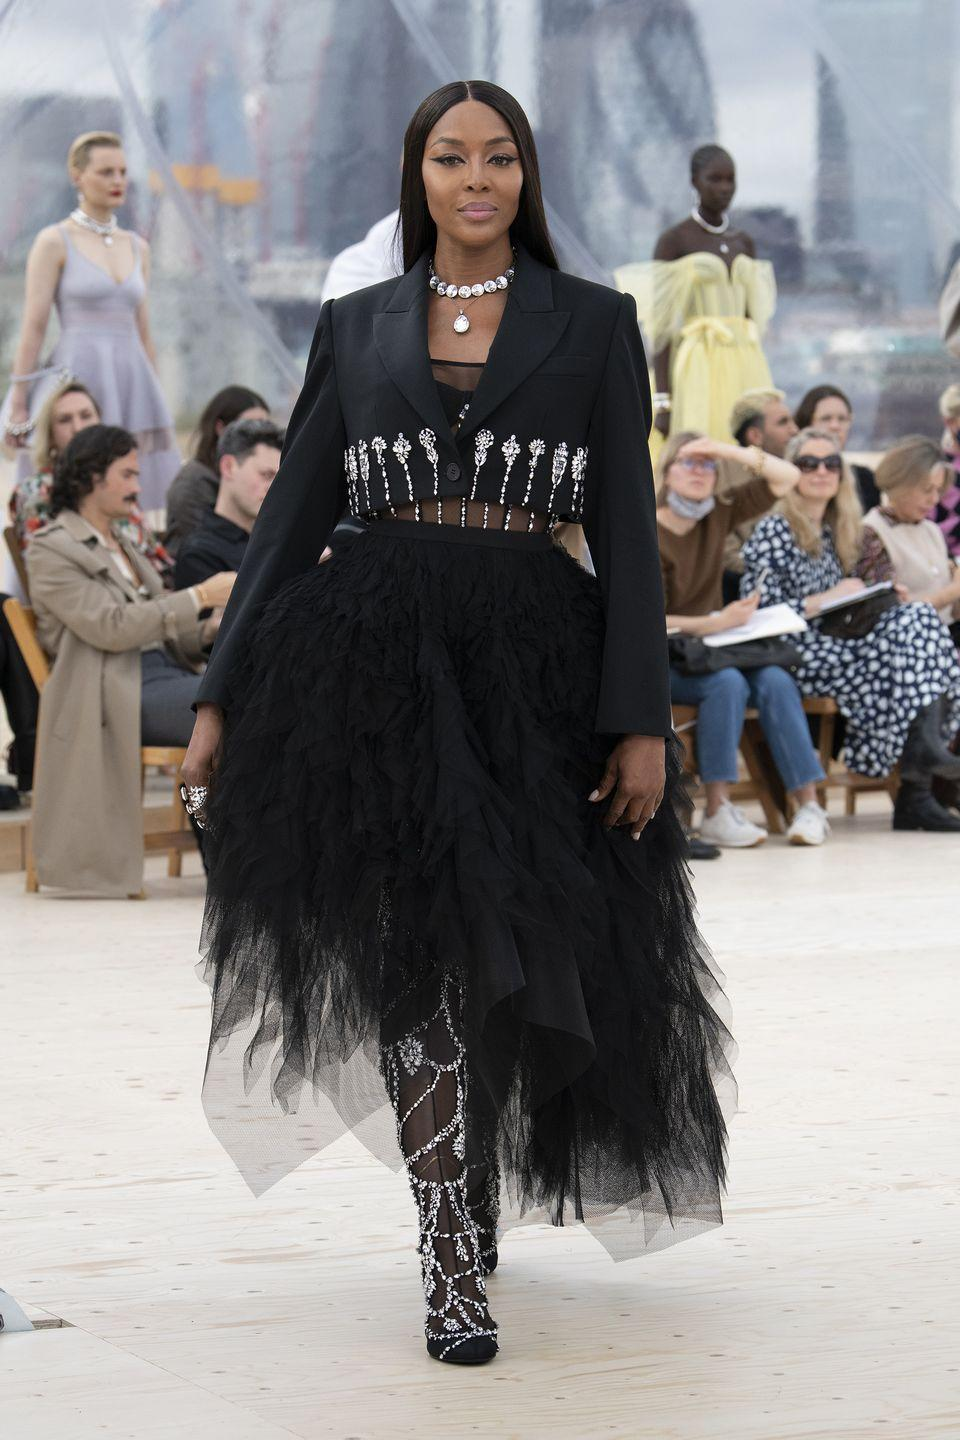 """<p>Naomi Campbell closed the spring/summer 2022 Alexander McQueen show, marking the first time the British brand has shown in London for five years. Titled 'London Skies', the catwalk event was held in a specially constructed dome overlooking the city skyline.</p><p>""""I'm interested in immersing myself in the environment in which we live and work in London, and in the elements as we experience them each day,"""" said creative director Sarah Burton.</p><p>The elements were depicted throughout the collection, from dreamlike cloud prints, to clothes inspired by the unpredictability of storm chasing, and variations on the glittering night sky. </p>"""